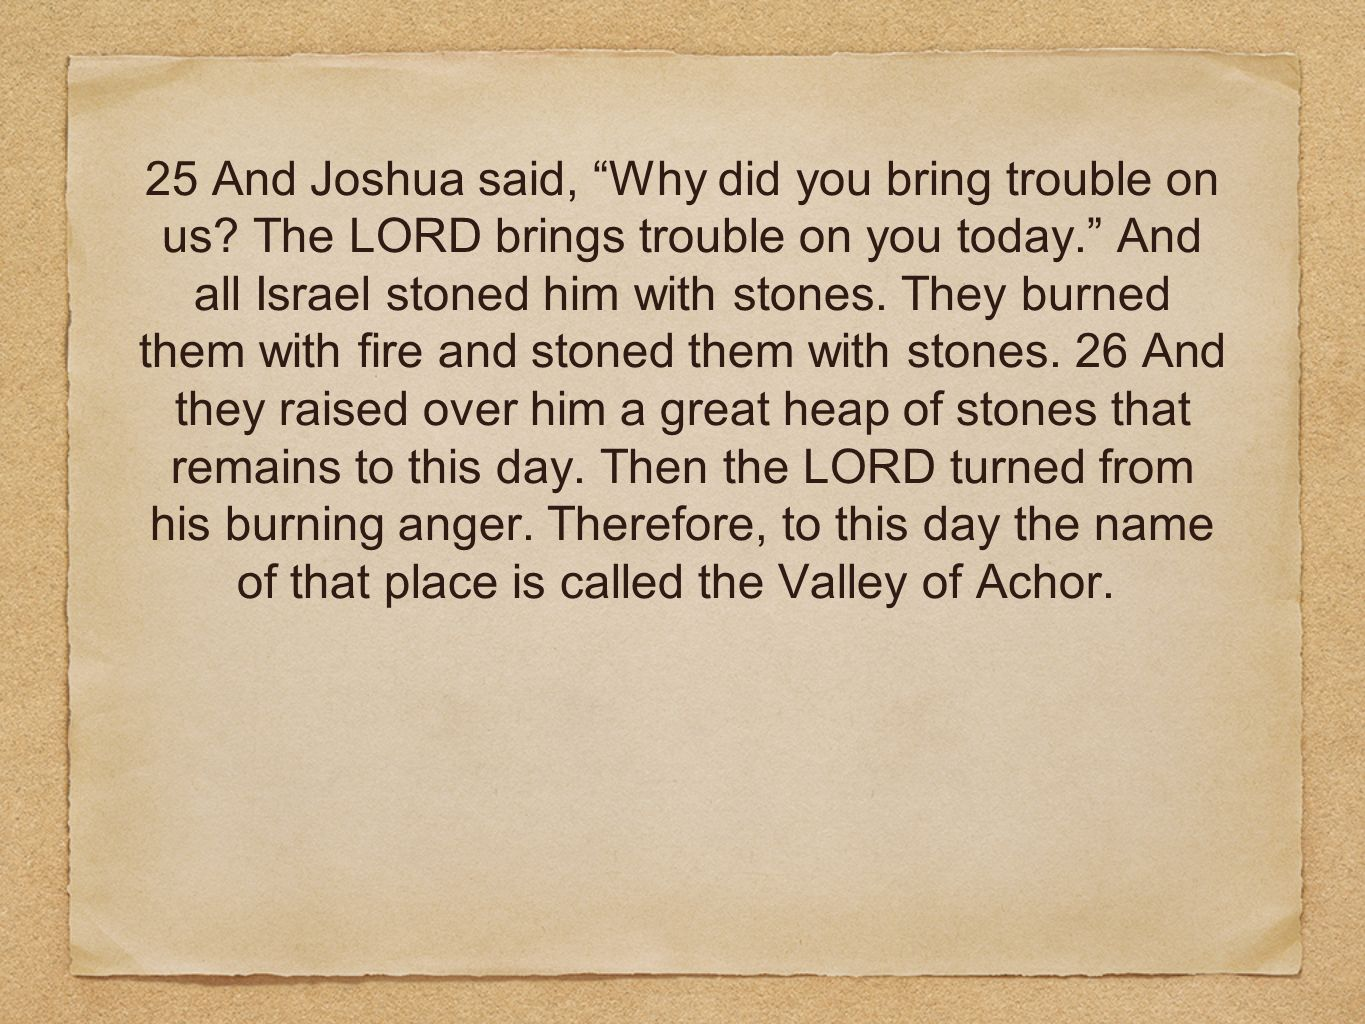 25 And Joshua said, Why did you bring trouble on us? The LORD brings trouble on you today. And all Israel stoned him with stones. They burned them wit